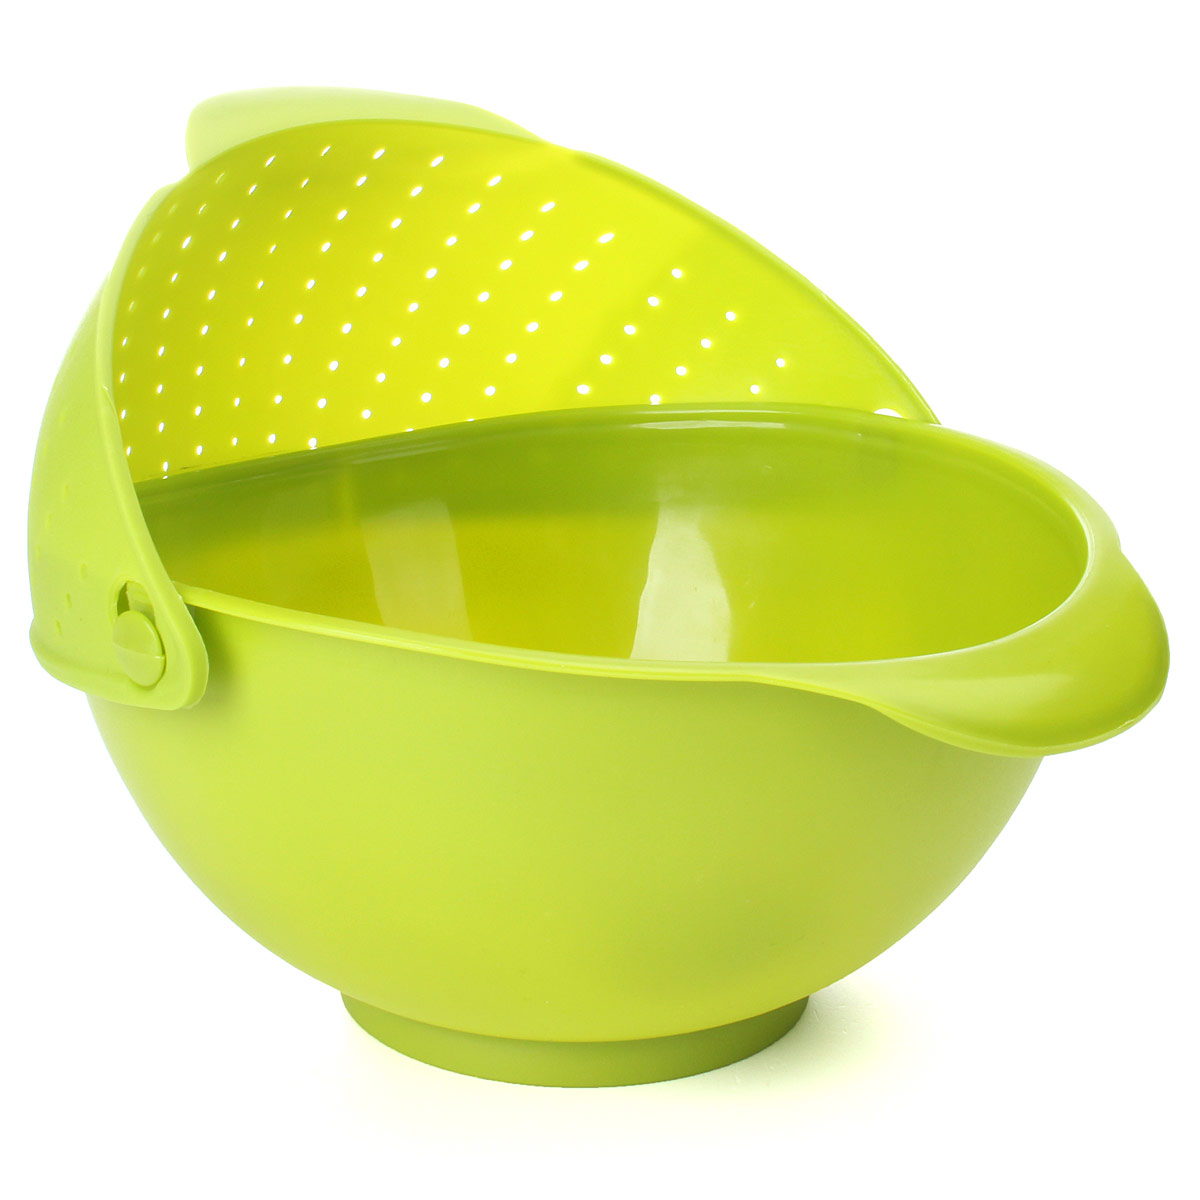 2in1 Kitchen Rinse Bowl & Strainer Fruit Vegetable Food Rice Wash Sieve Colander